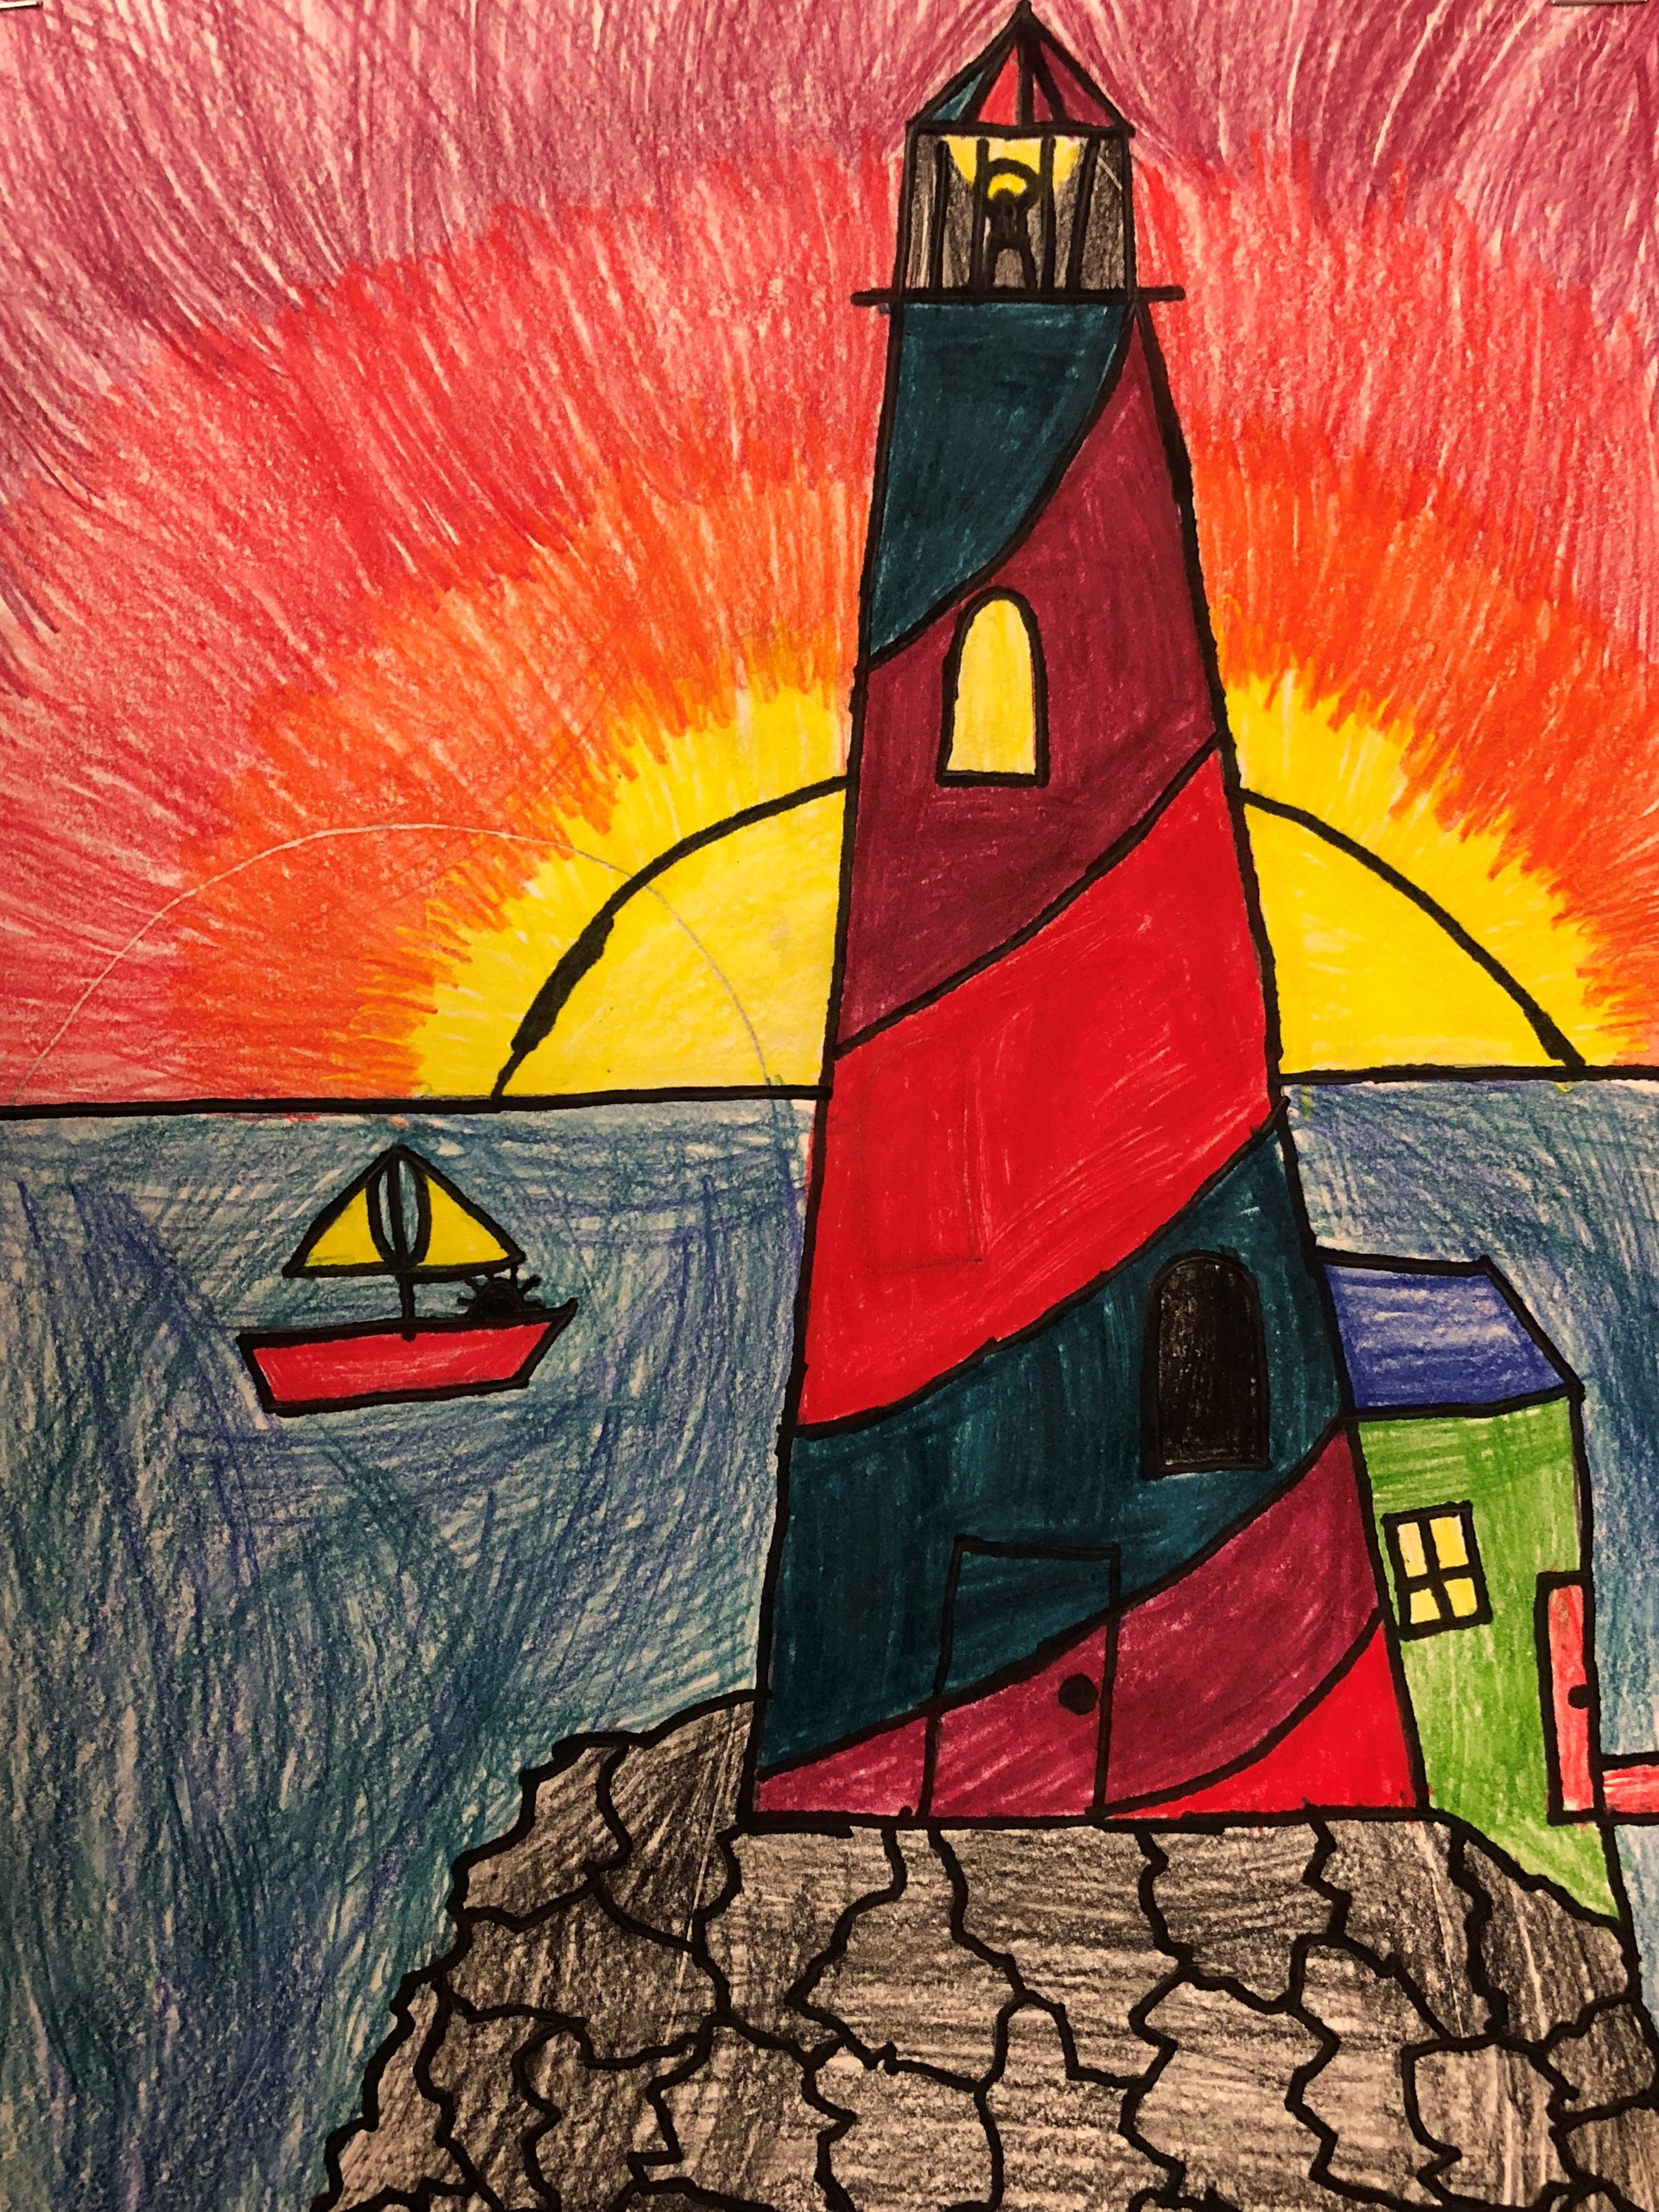 drawing of a boat and lighthouse